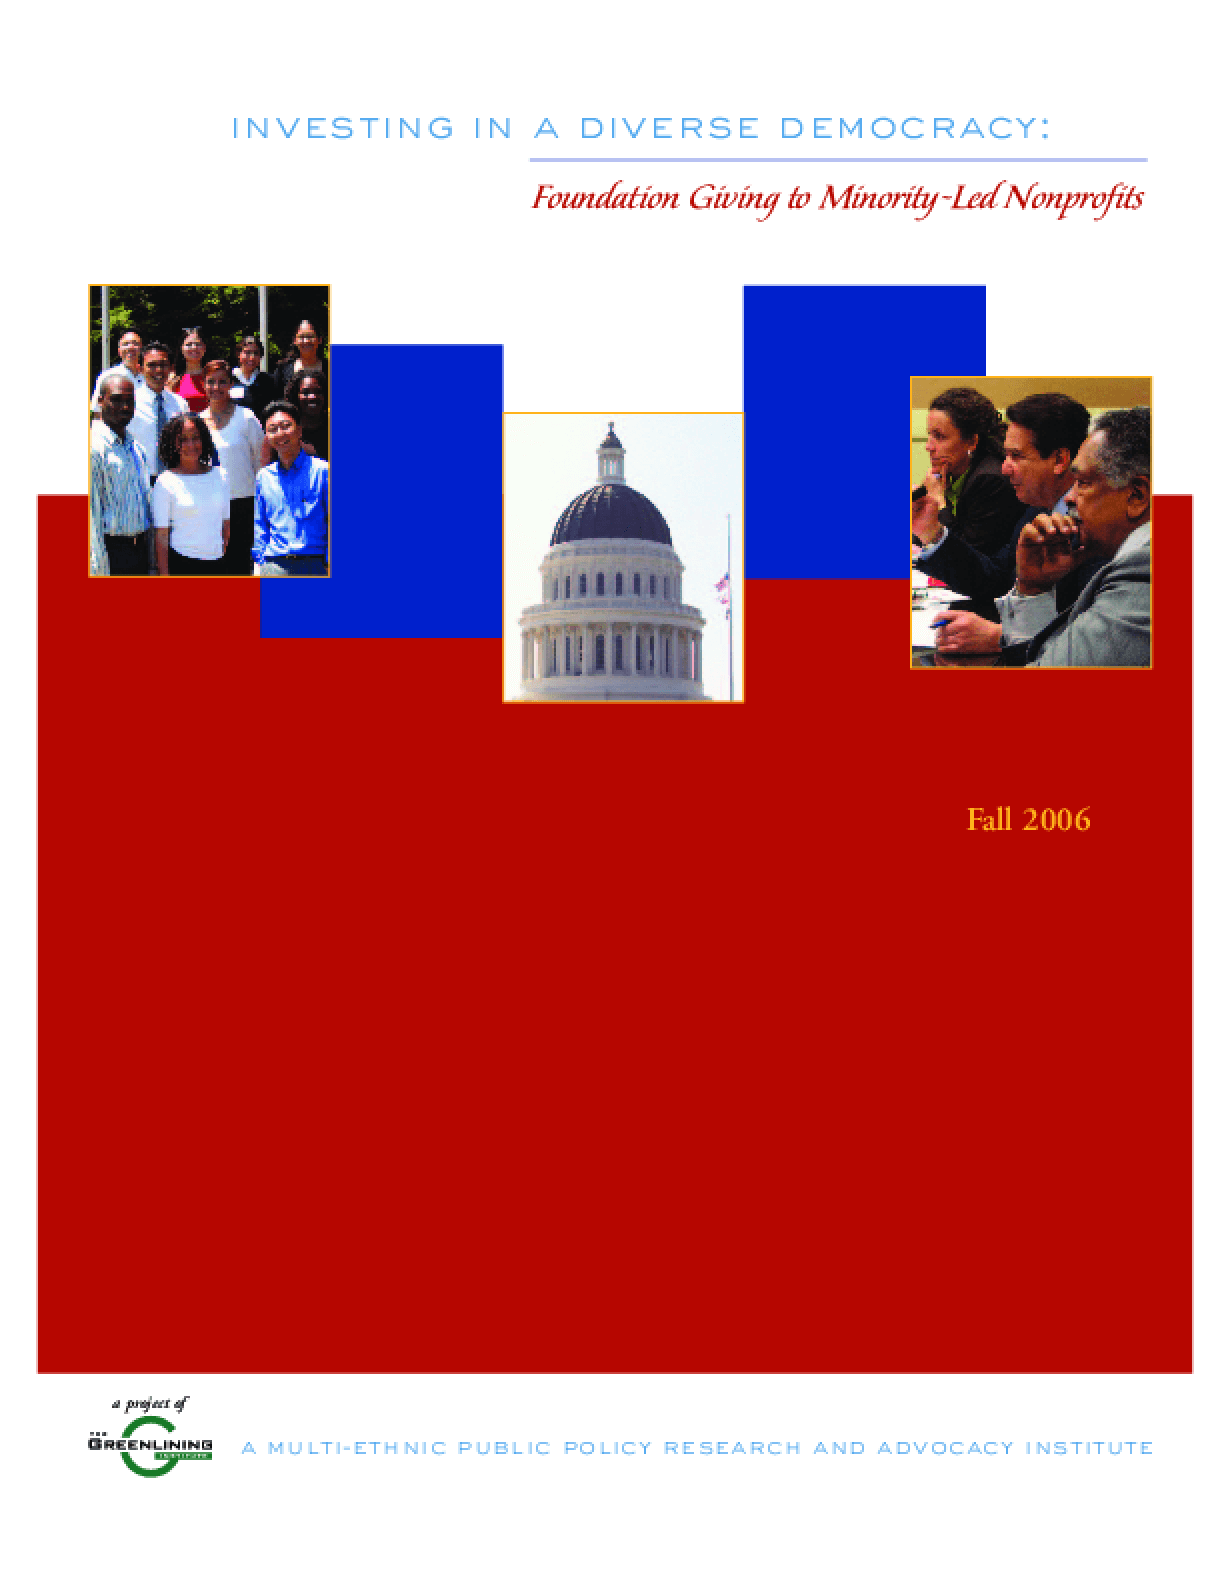 Investing in a Diverse Democracy: Foundation Giving to Minority-led Nonprofits